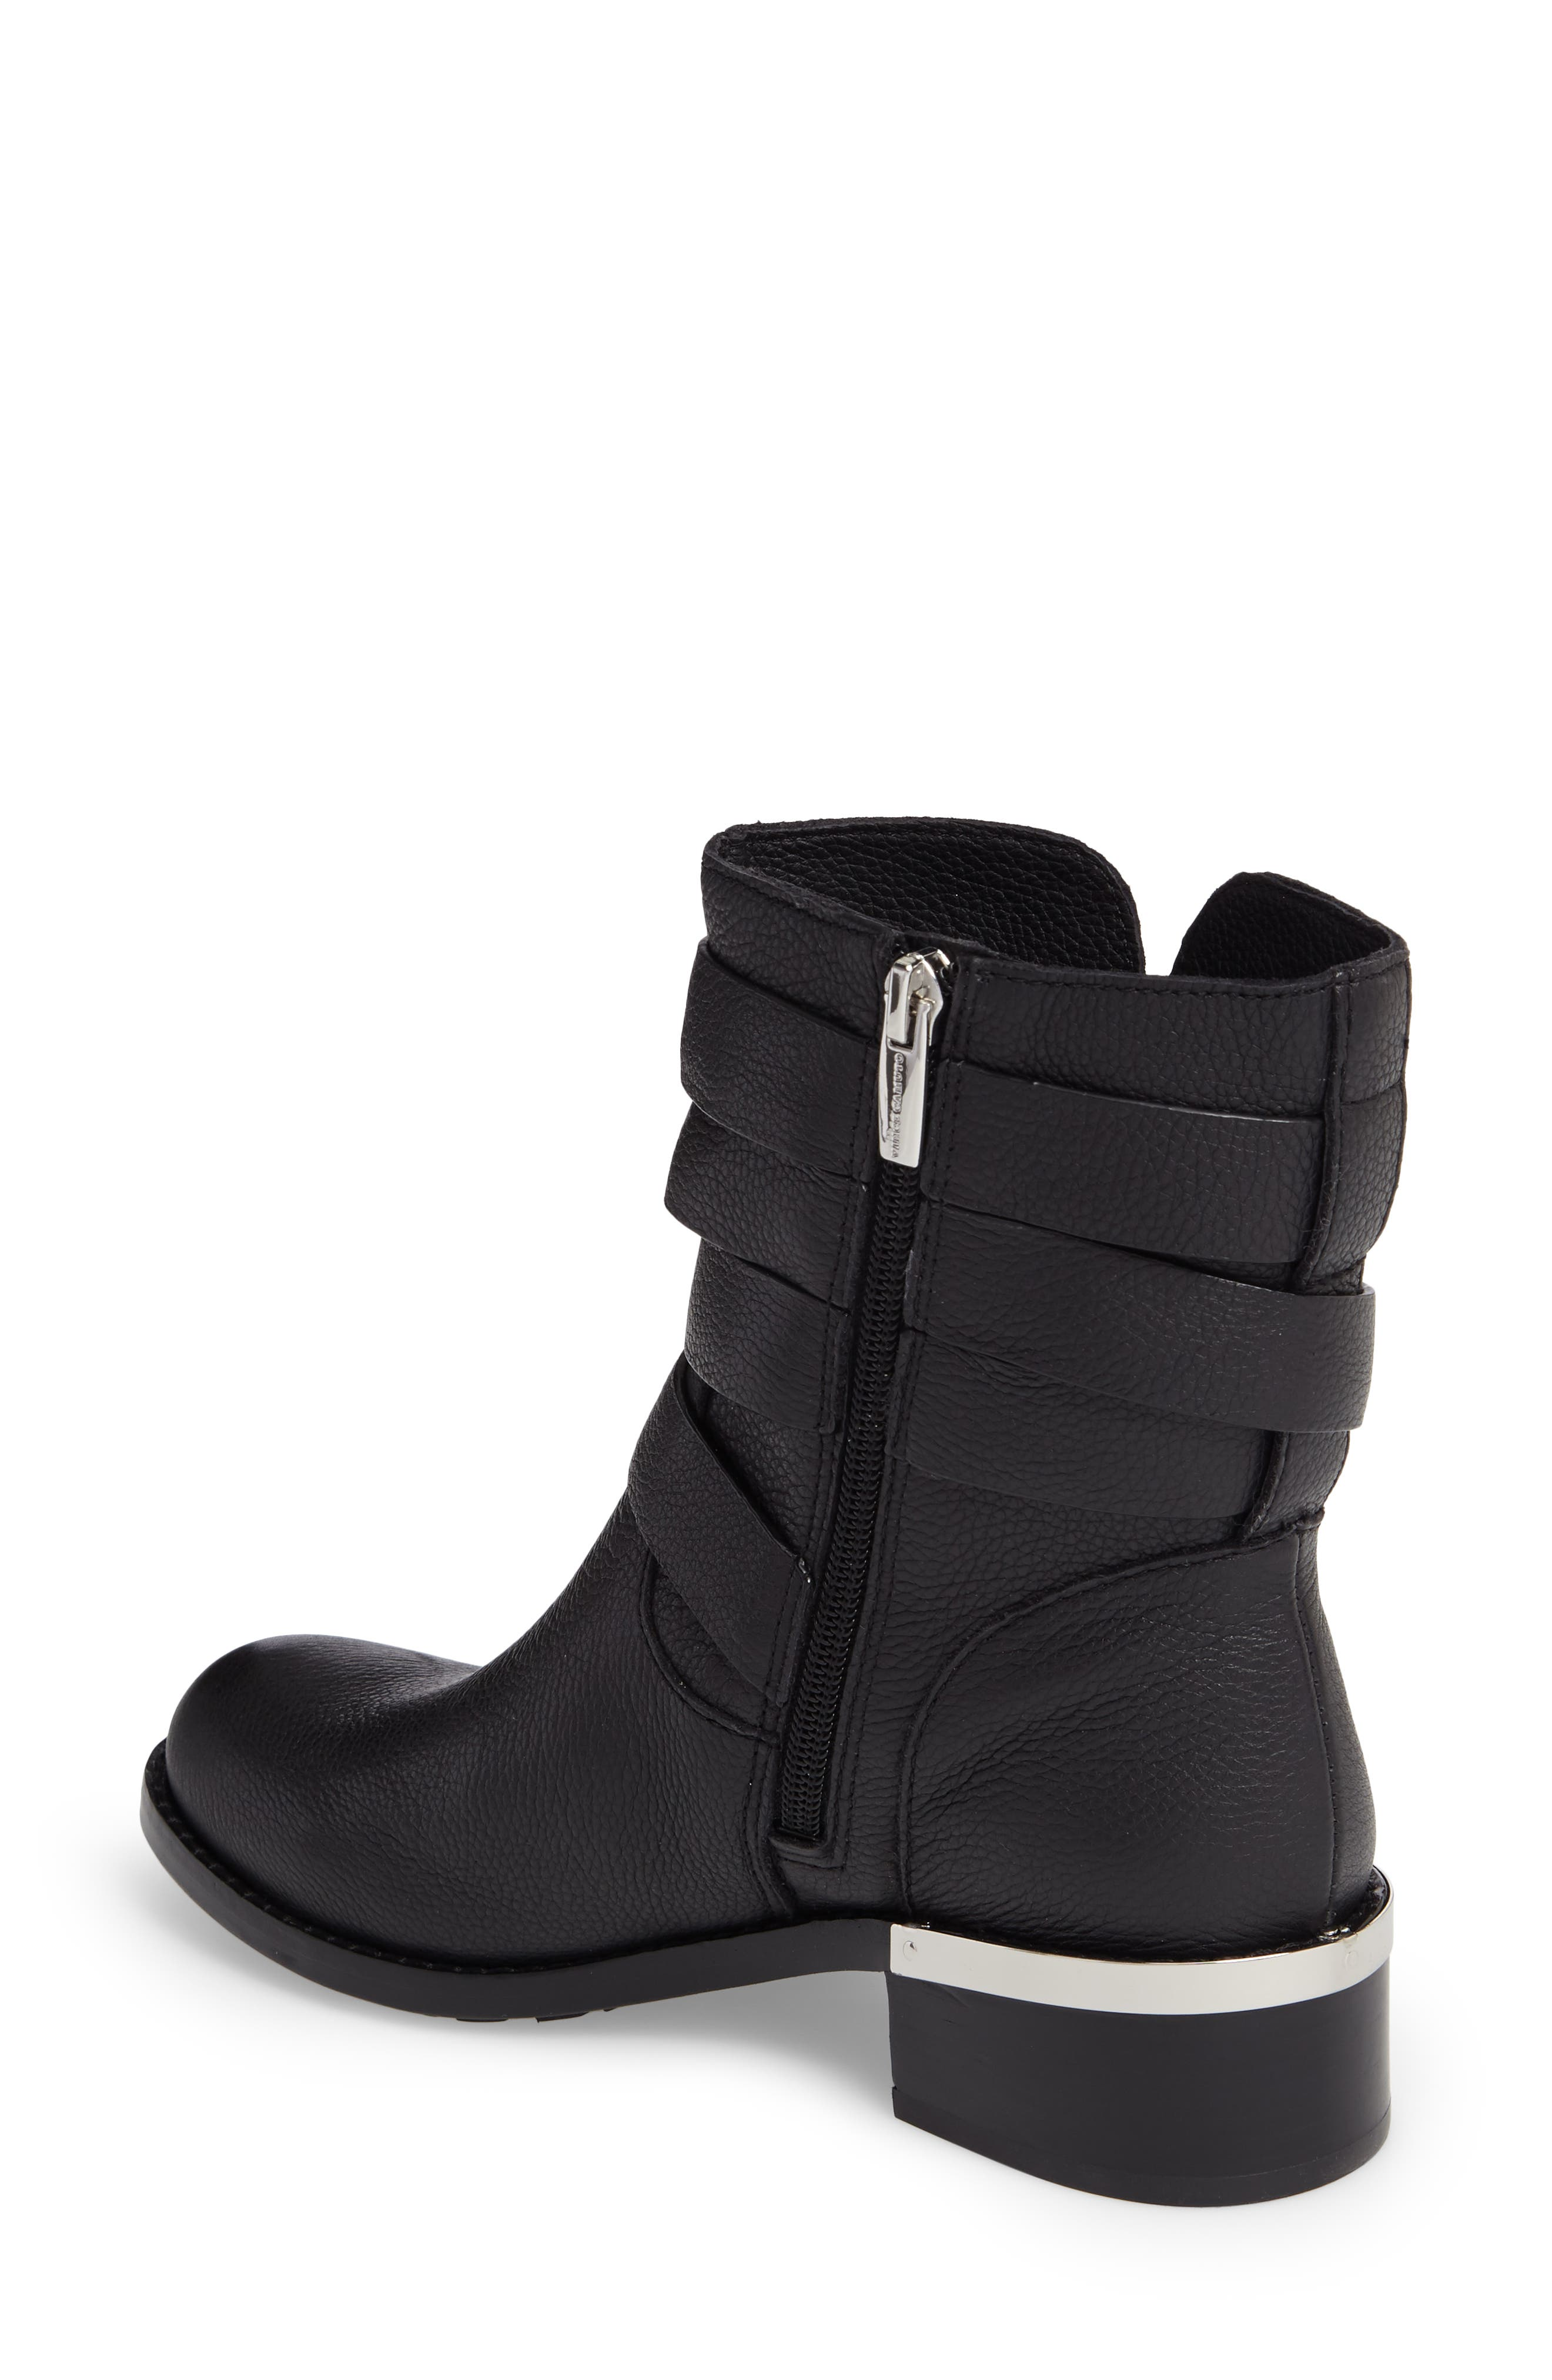 Webey Boot,                             Alternate thumbnail 2, color,                             Black Leather